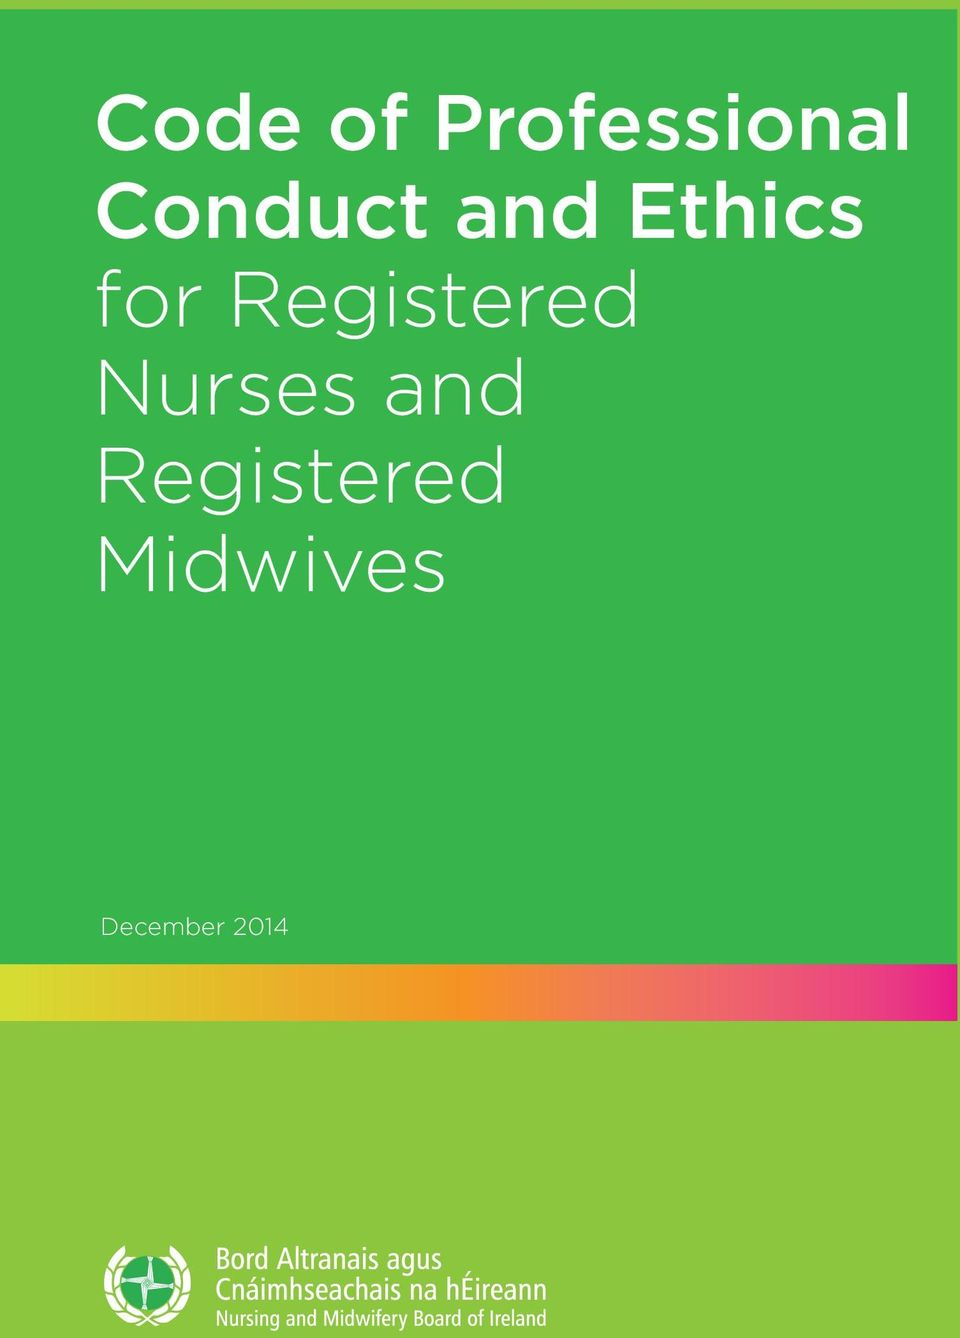 Registered Nurses and